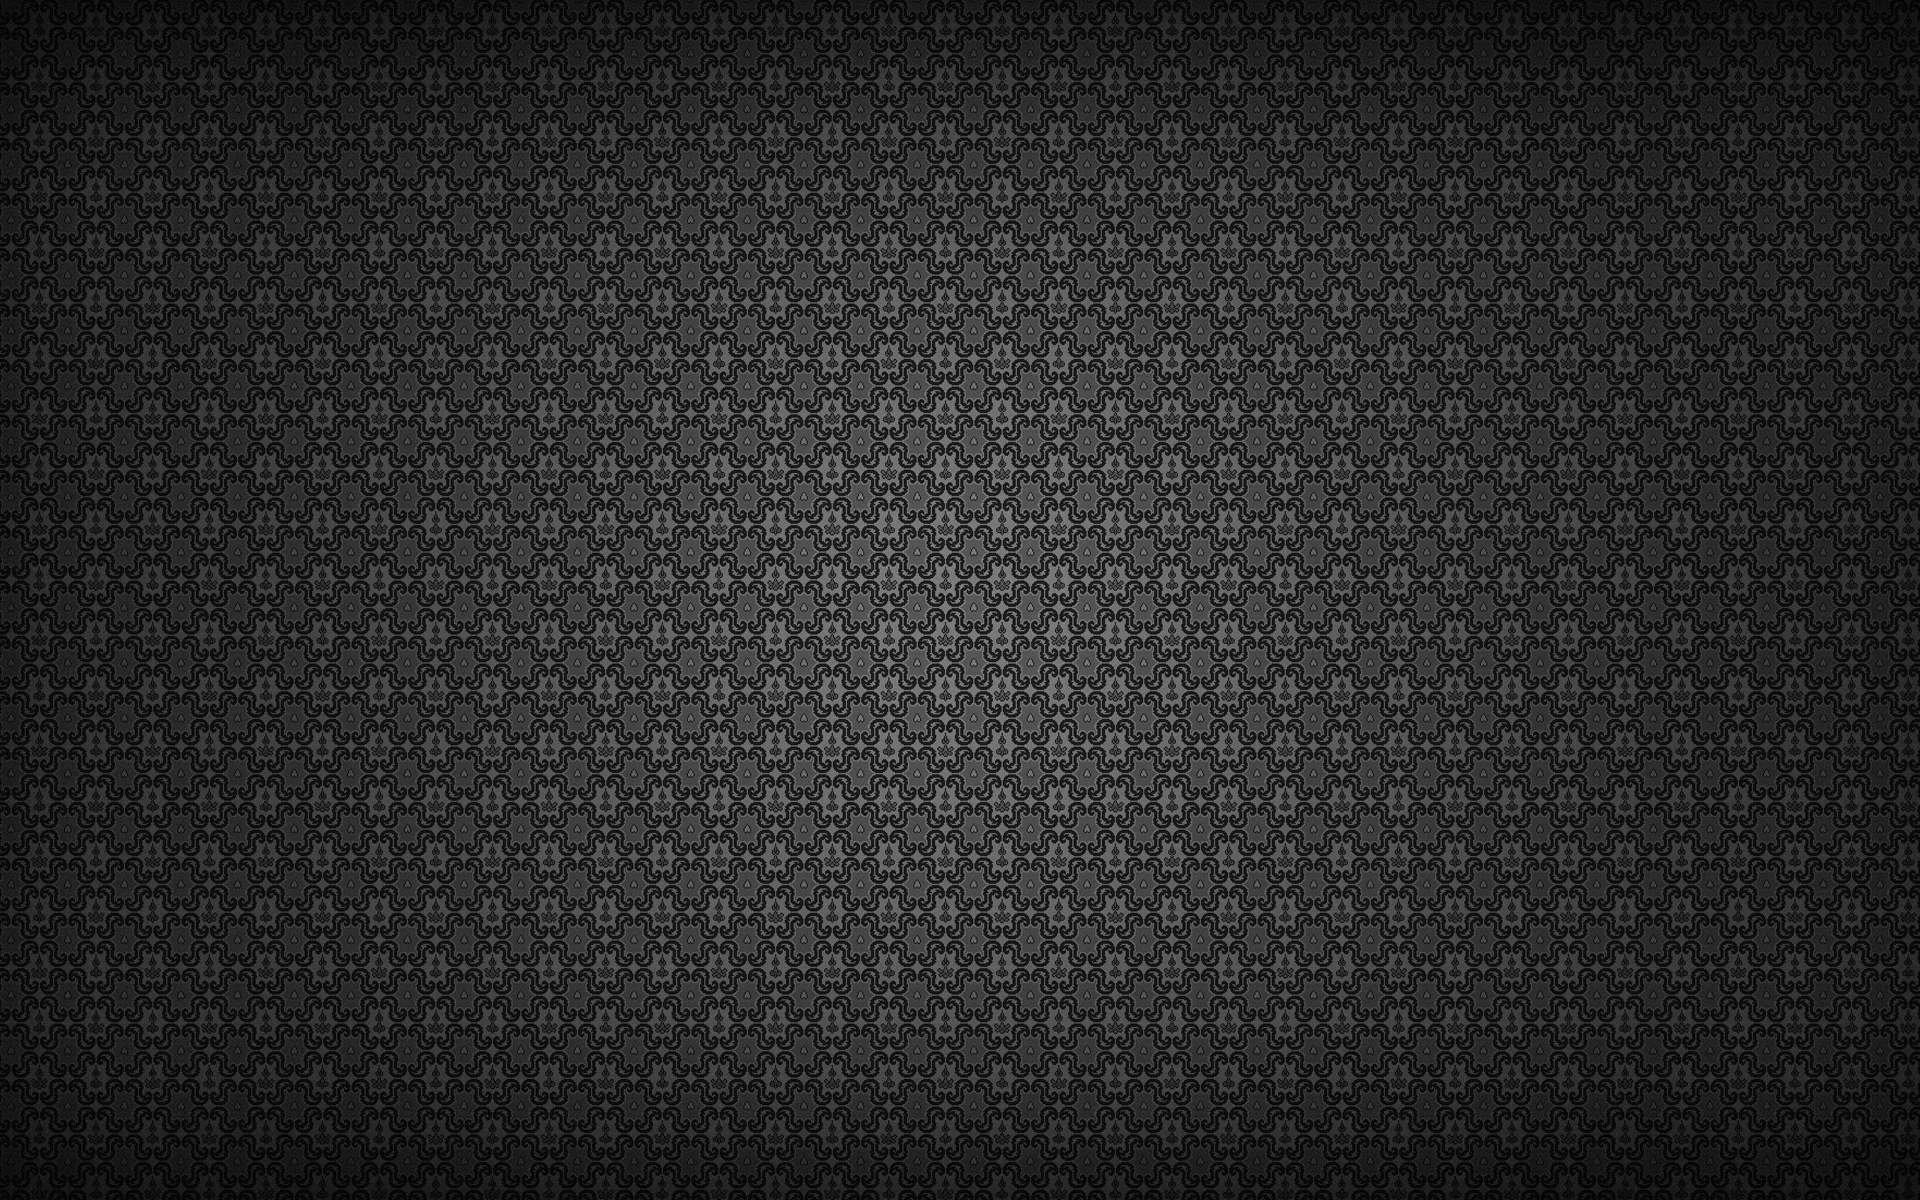 Texture wallpaper backgrounds wallpapersafari for Textures and backgrounds